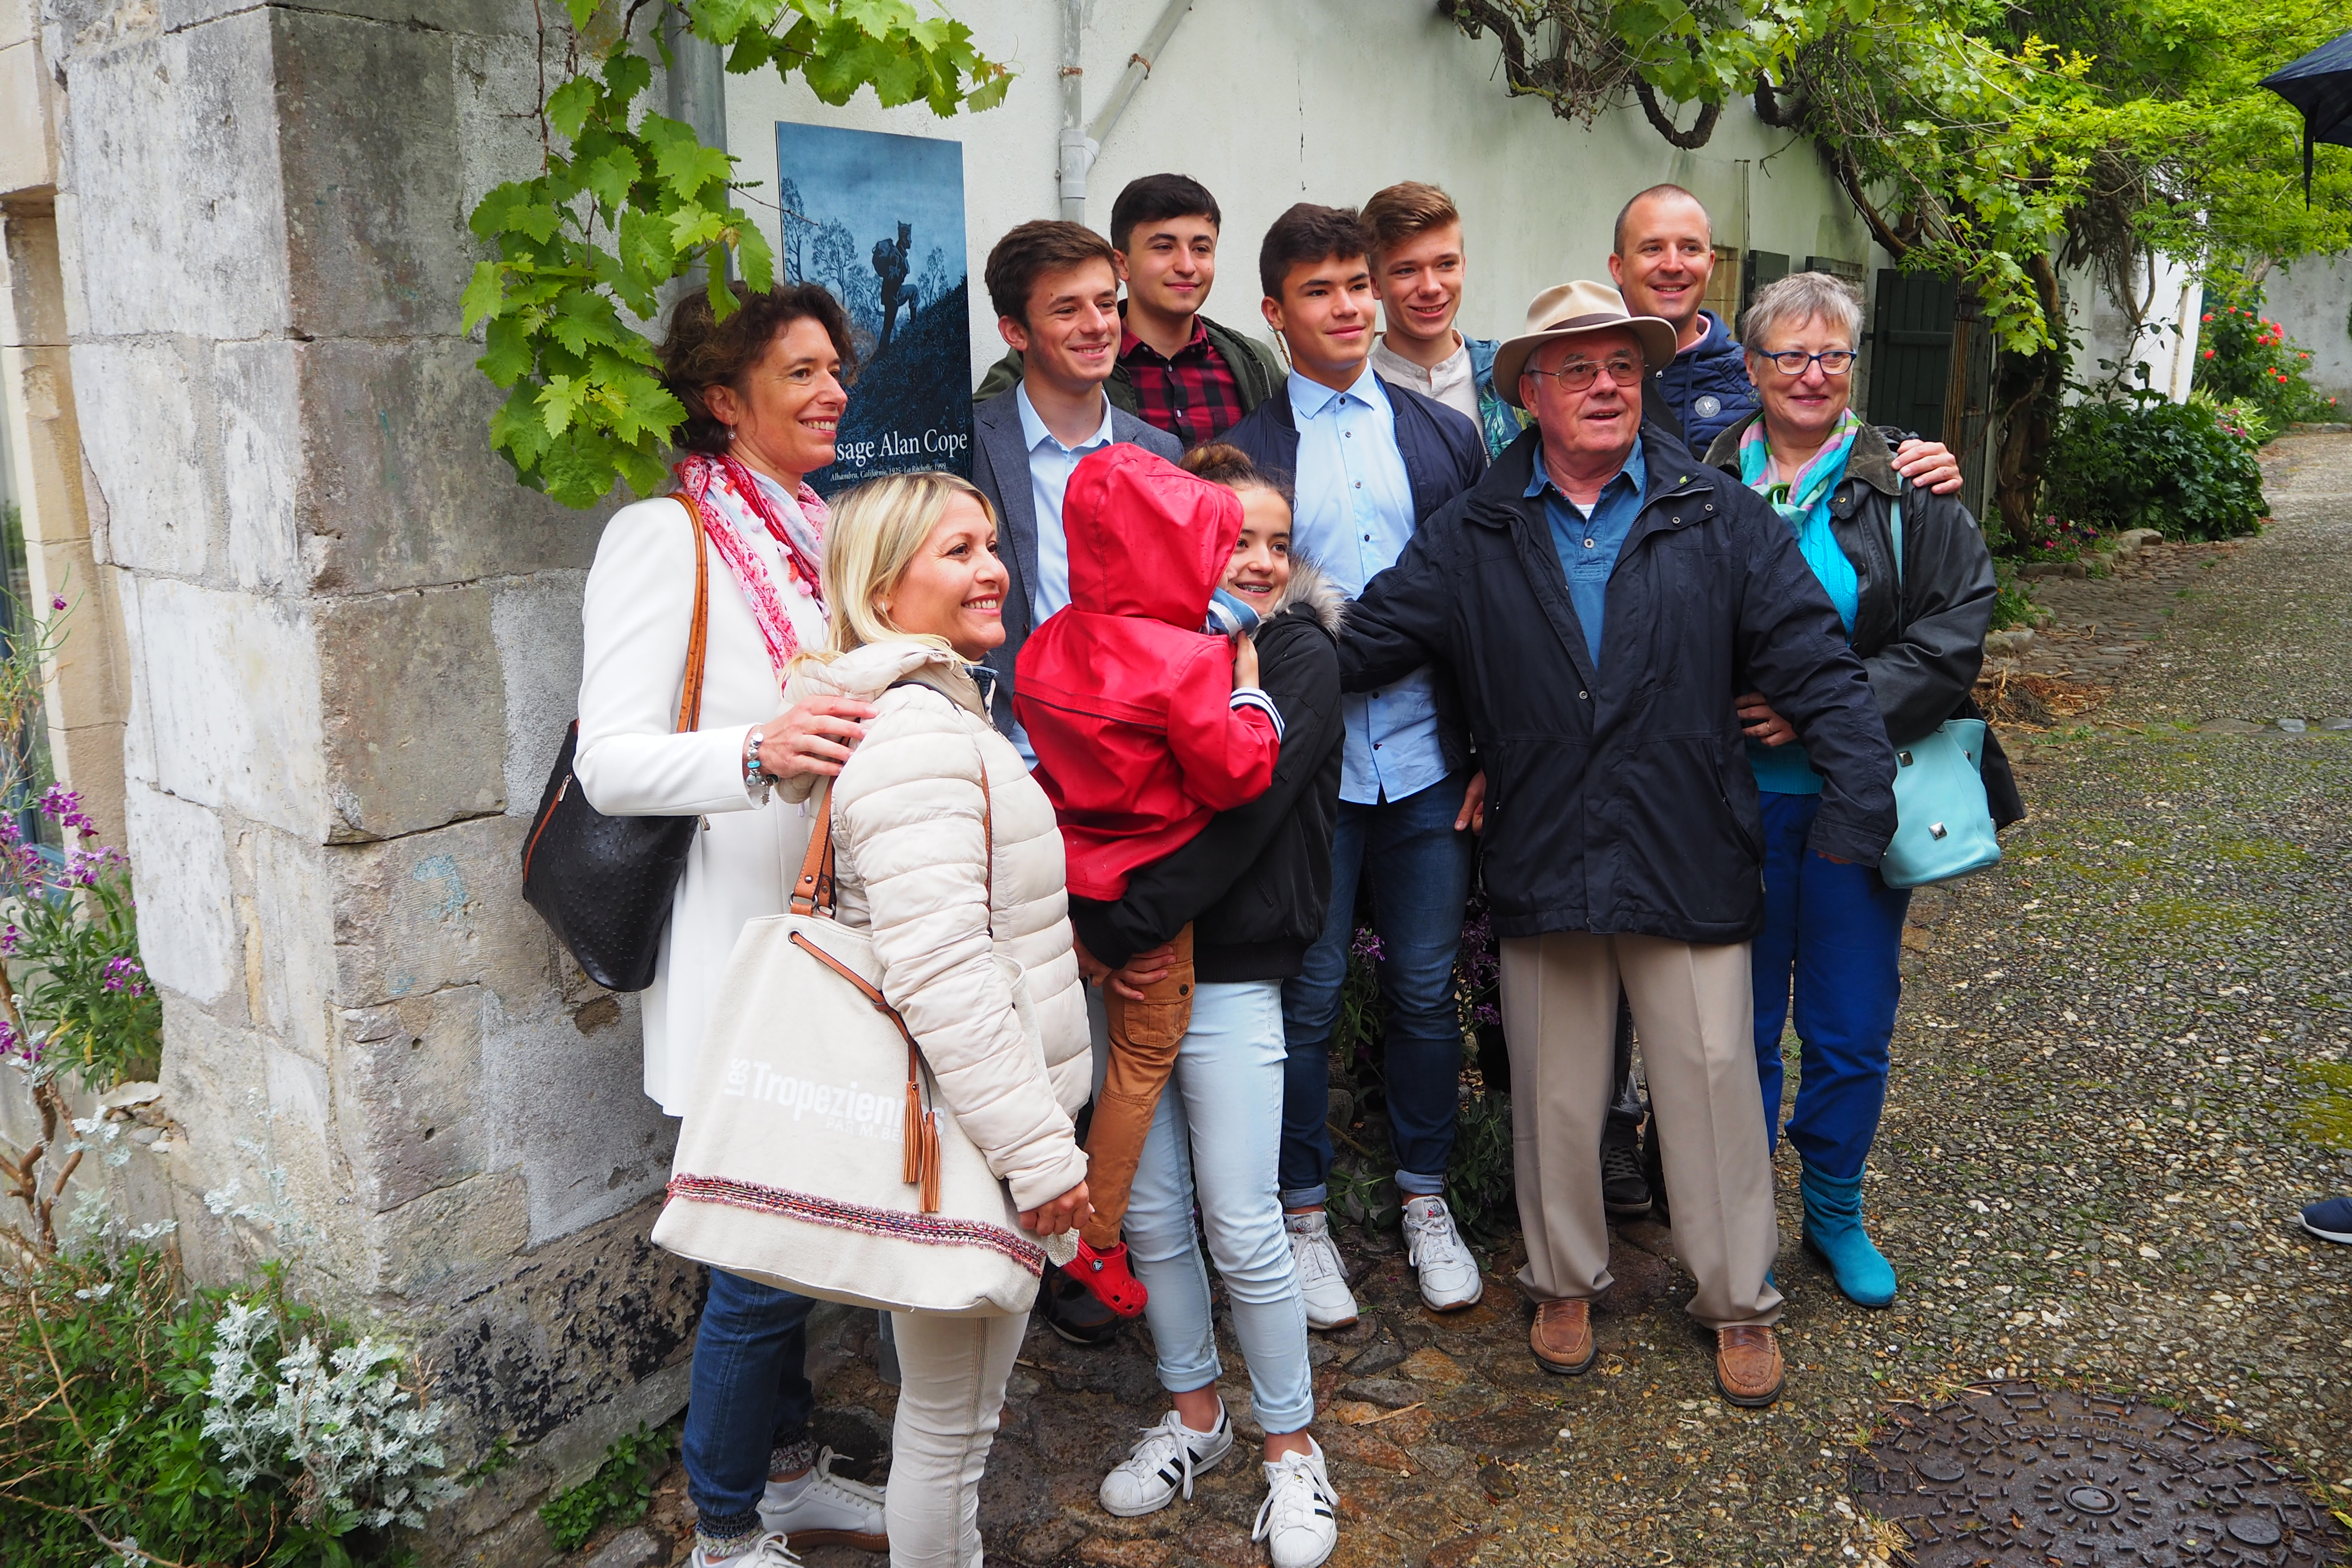 Inauguration Passage Alan Cope Saint-Martin 2018 - 02